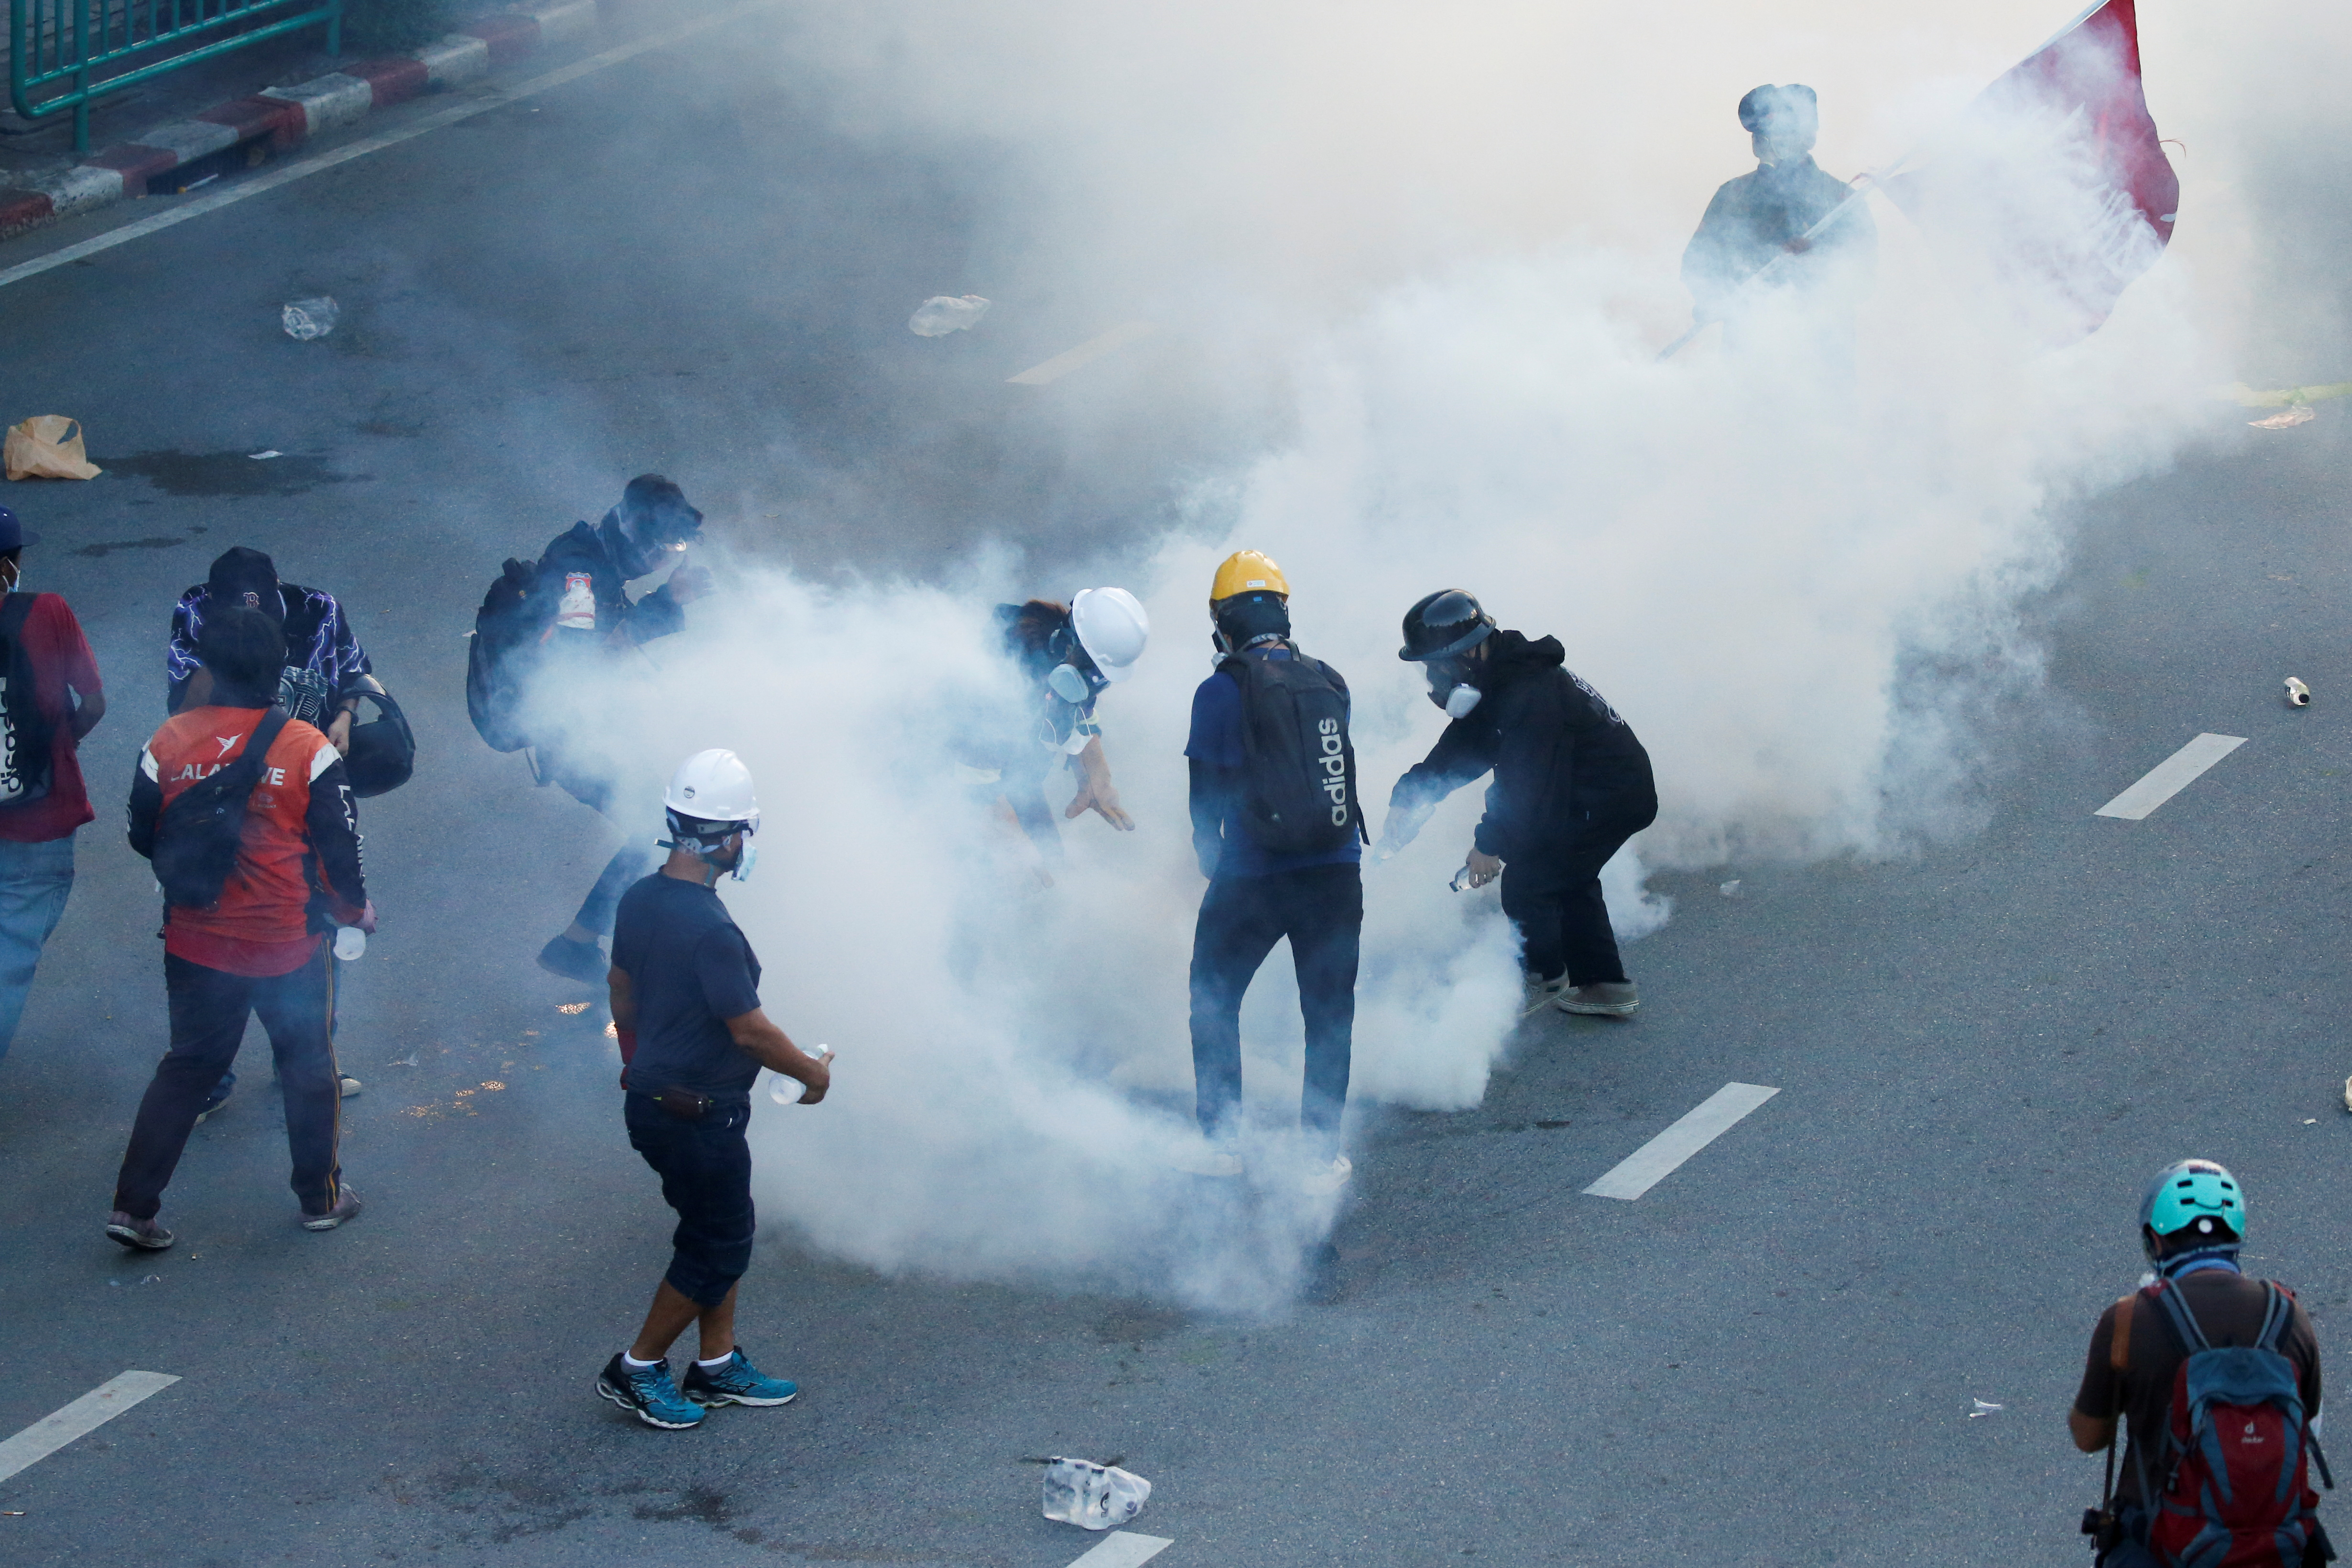 People stand among tear gas during a protest over the government's handling of the coronavirus disease (COVID-19) pandemic, in Bangkok, Thailand, August 16, 2021. REUTERS/Soe Zeya Tun